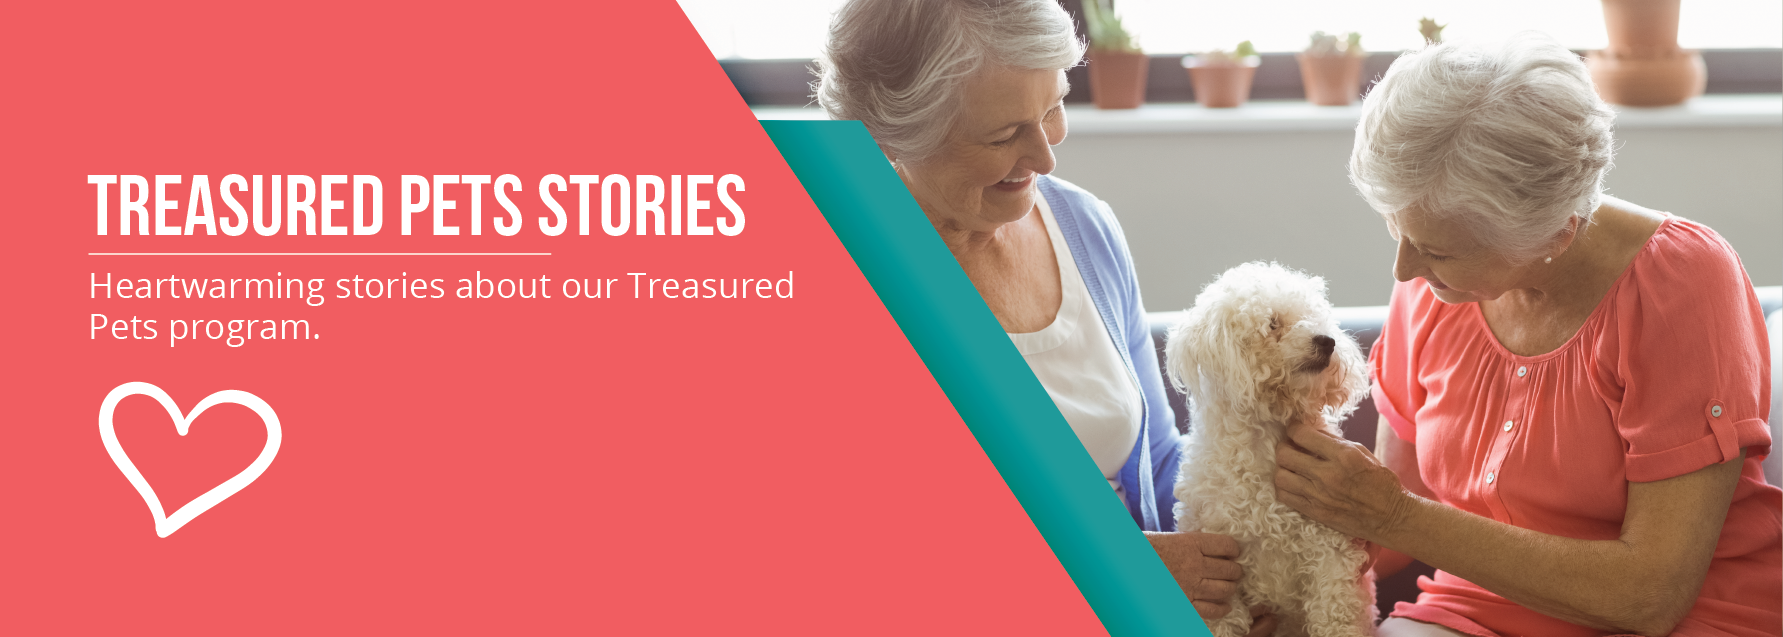 Treasured Pets Stories